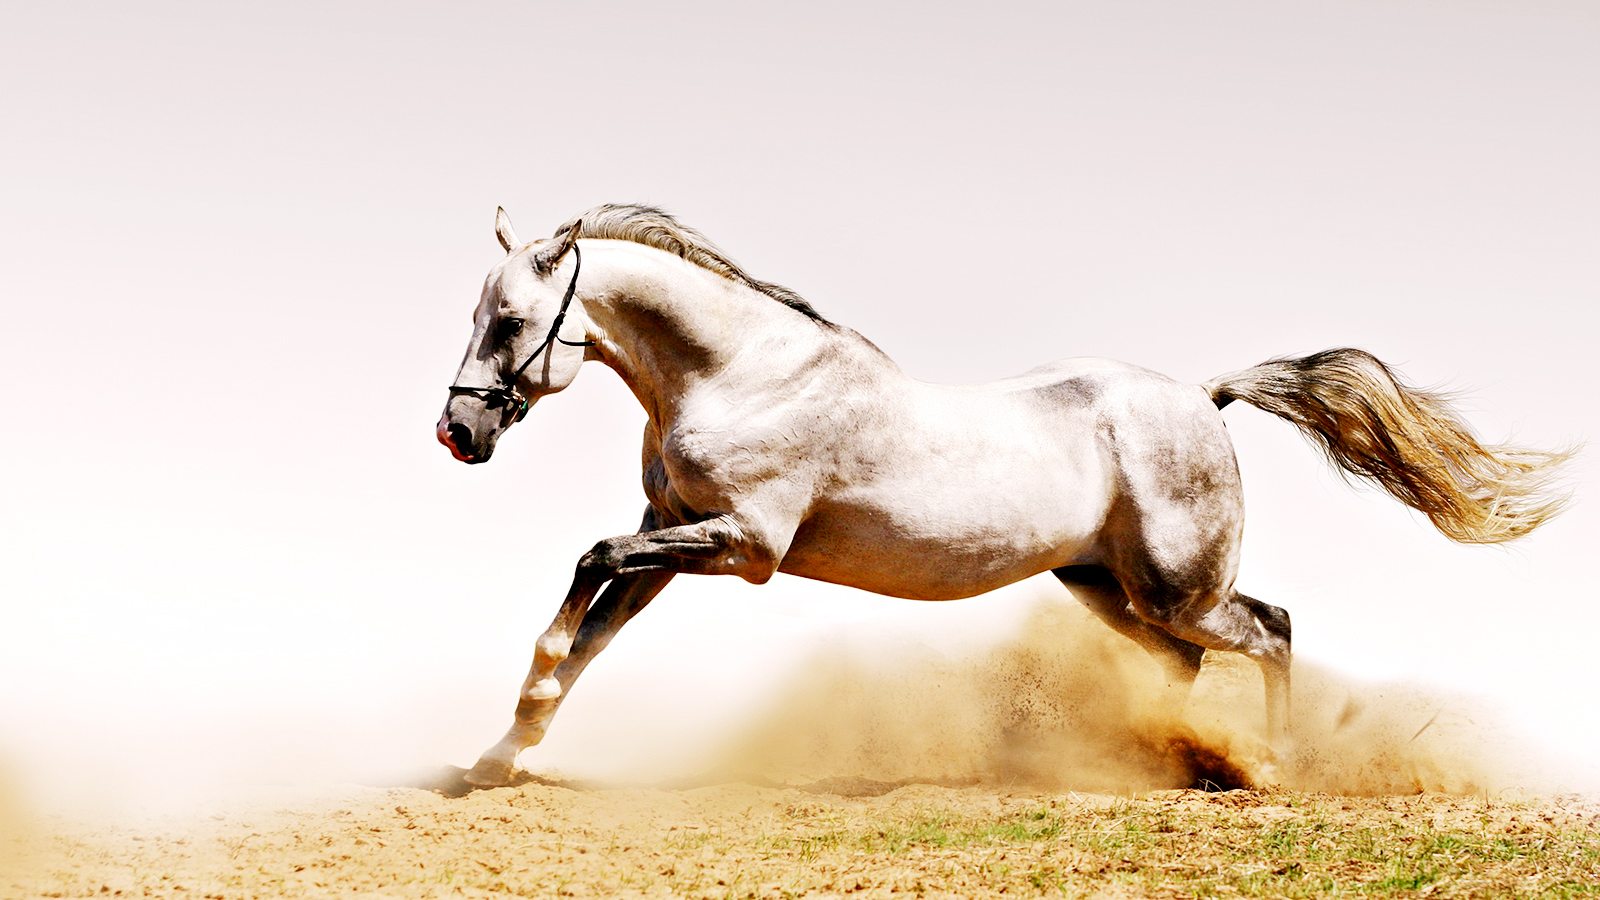 Fantastic   Wallpaper Horse Glitter - White_Horse_in_Dust_HD_Wallpaper-Vvallpaper  Pictures_494189.jpg